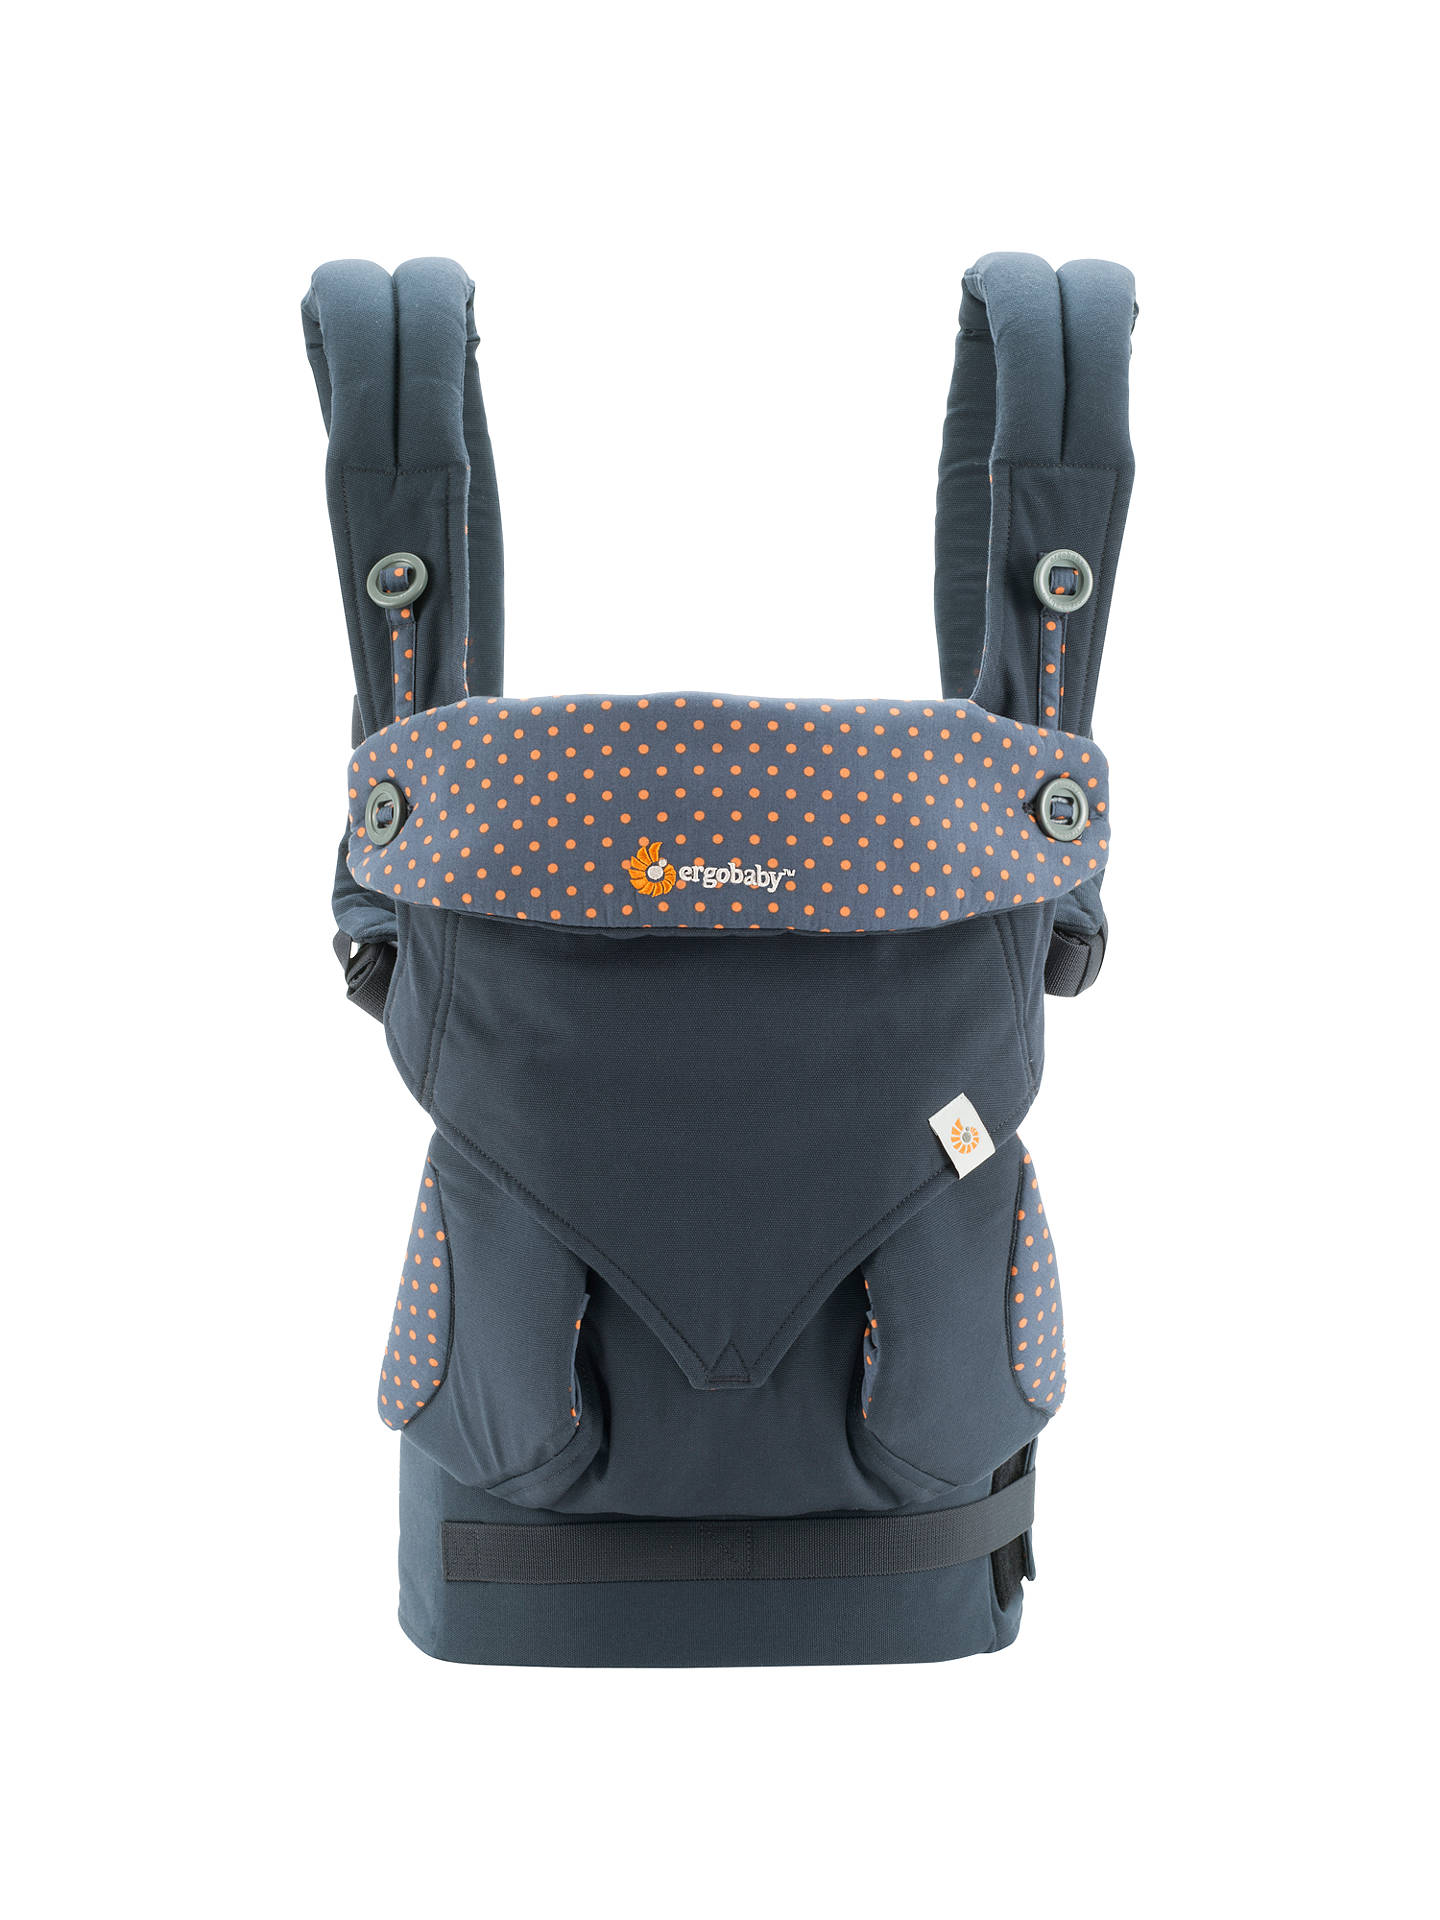 d948cefc81a Buy Ergobaby Four Position 360 Baby Carrier